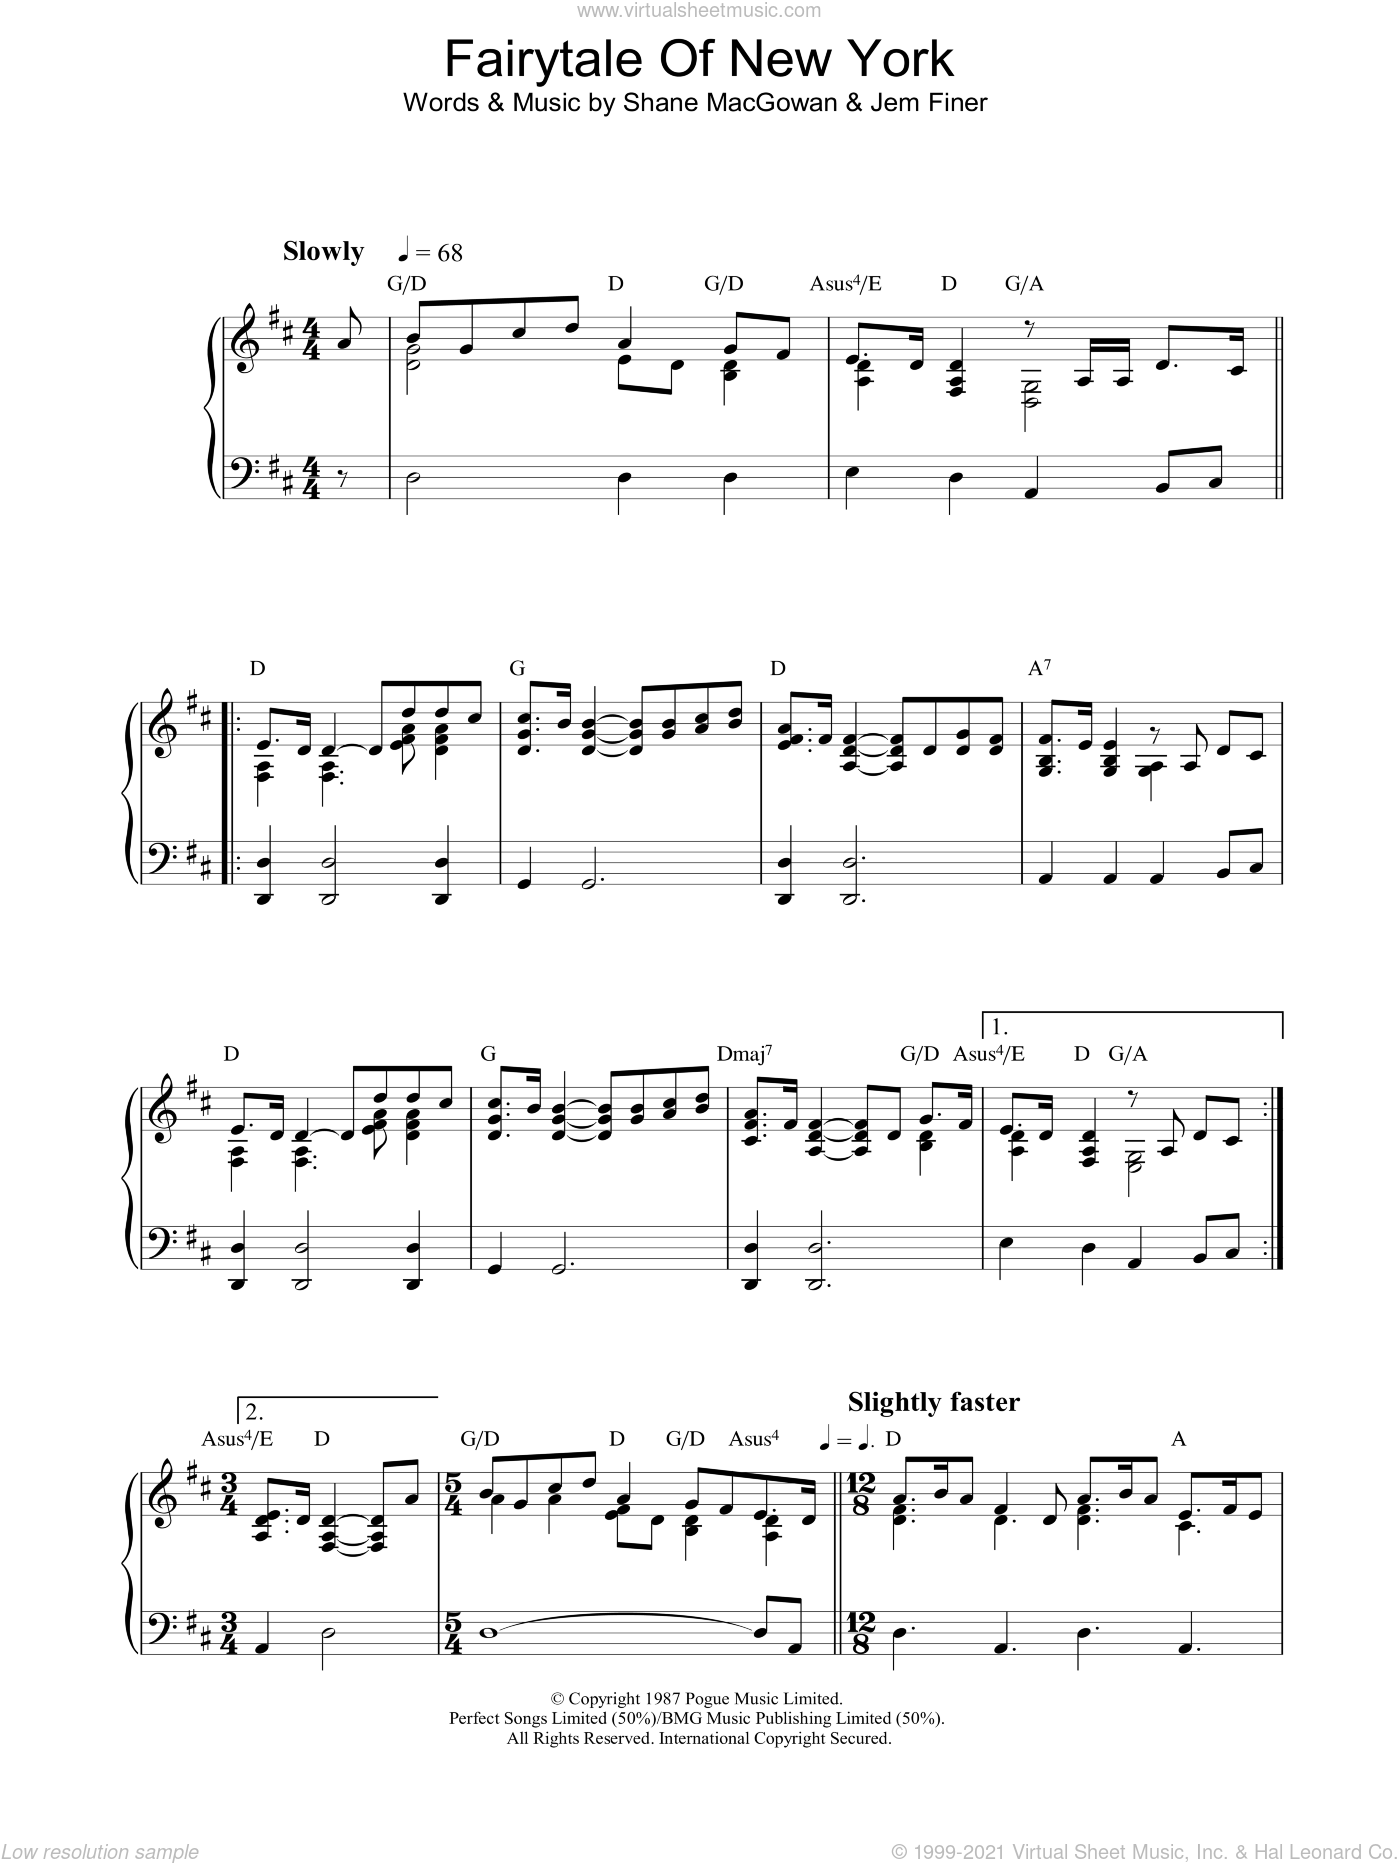 Fairytale Of New York sheet music for piano solo by Shane MacGowan